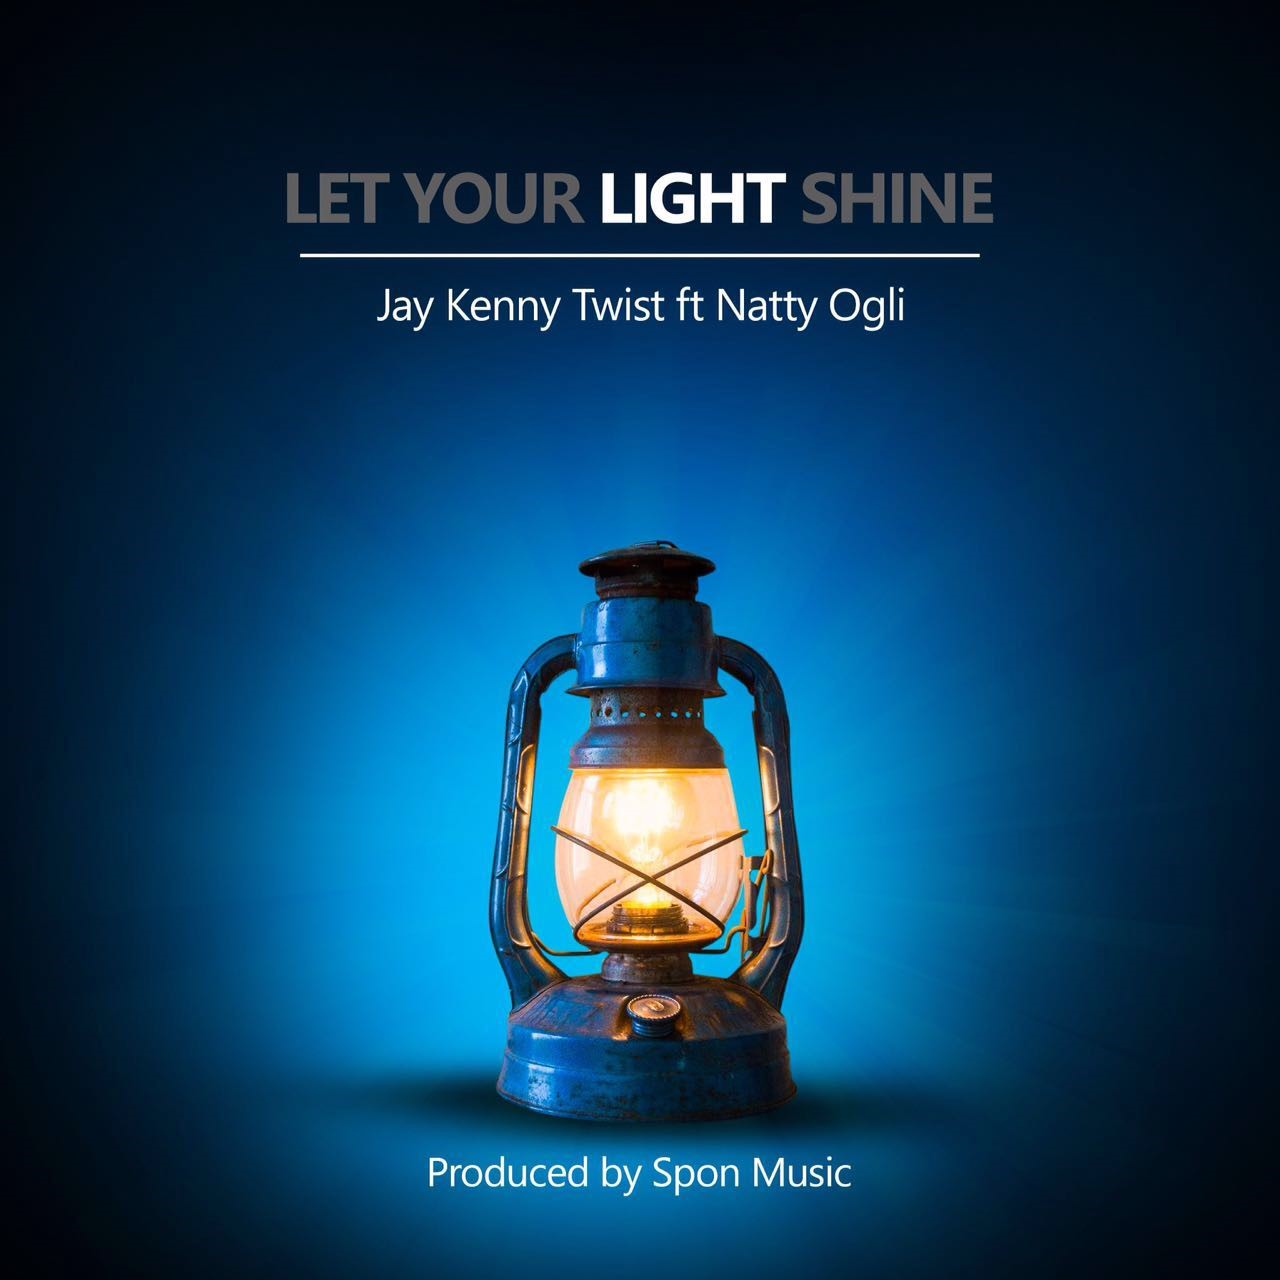 <strong>Jay Kenny Twist ft Natty Ogli &#8211; Let Your Light Shine</strong>